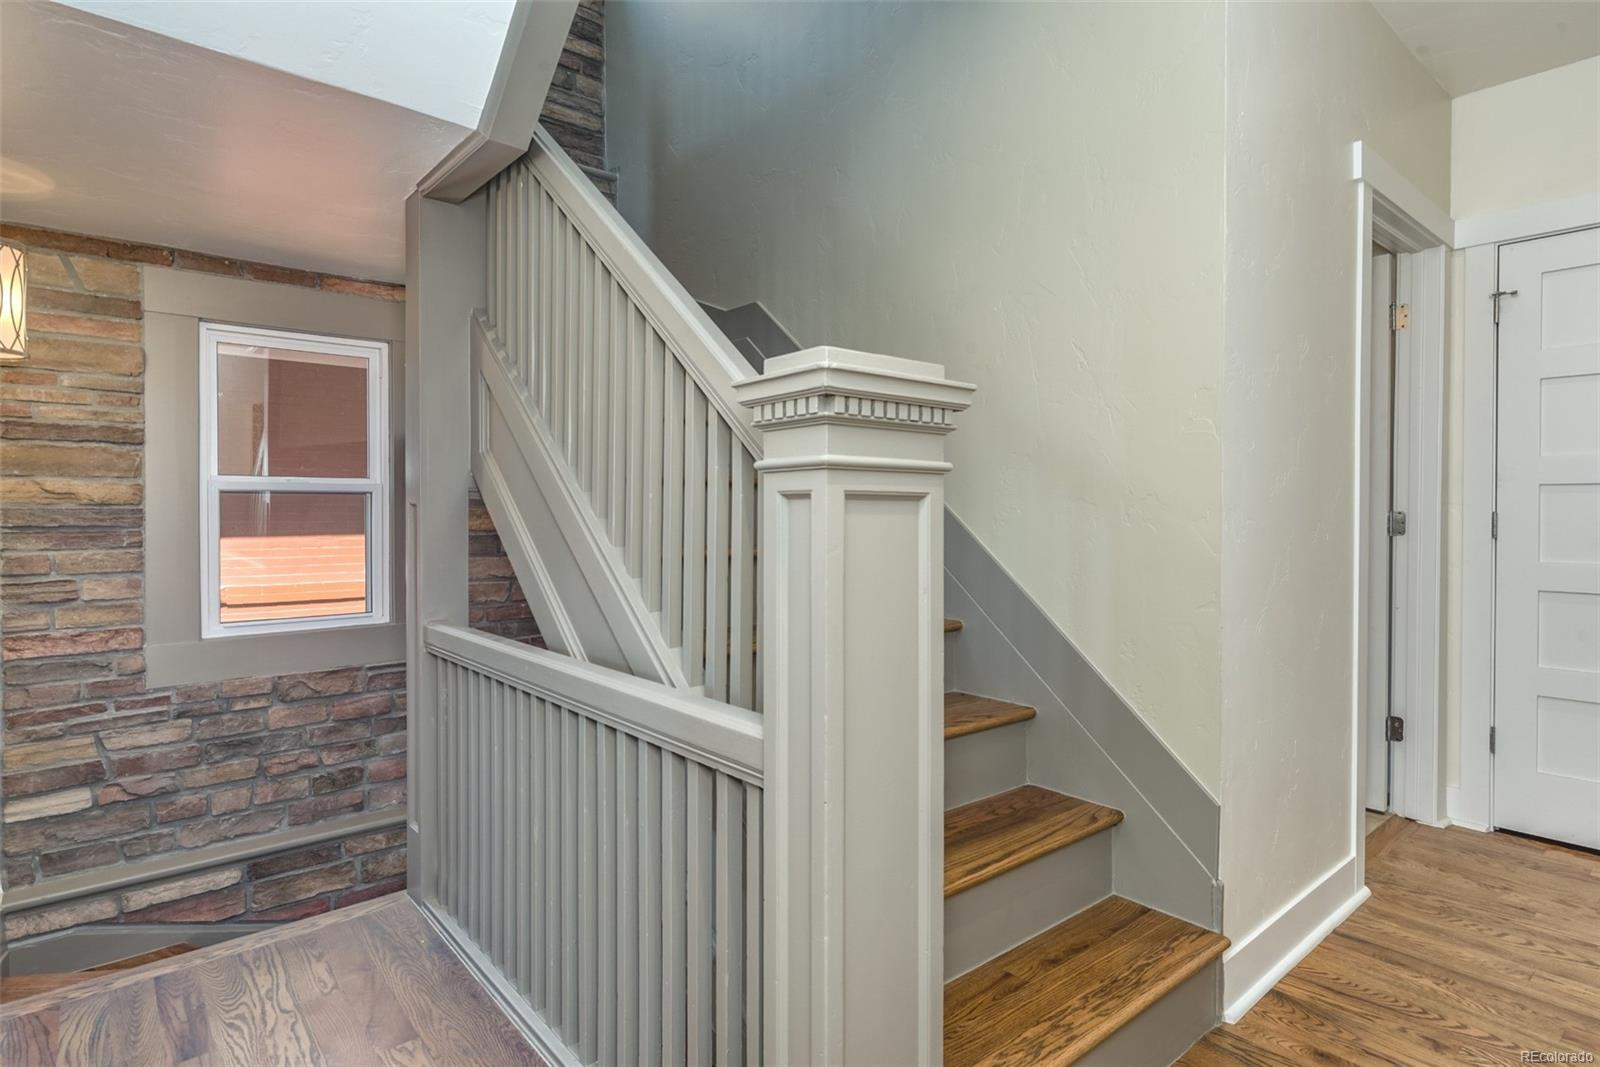 ORIGINAL WOODWORK & BANISTERS!